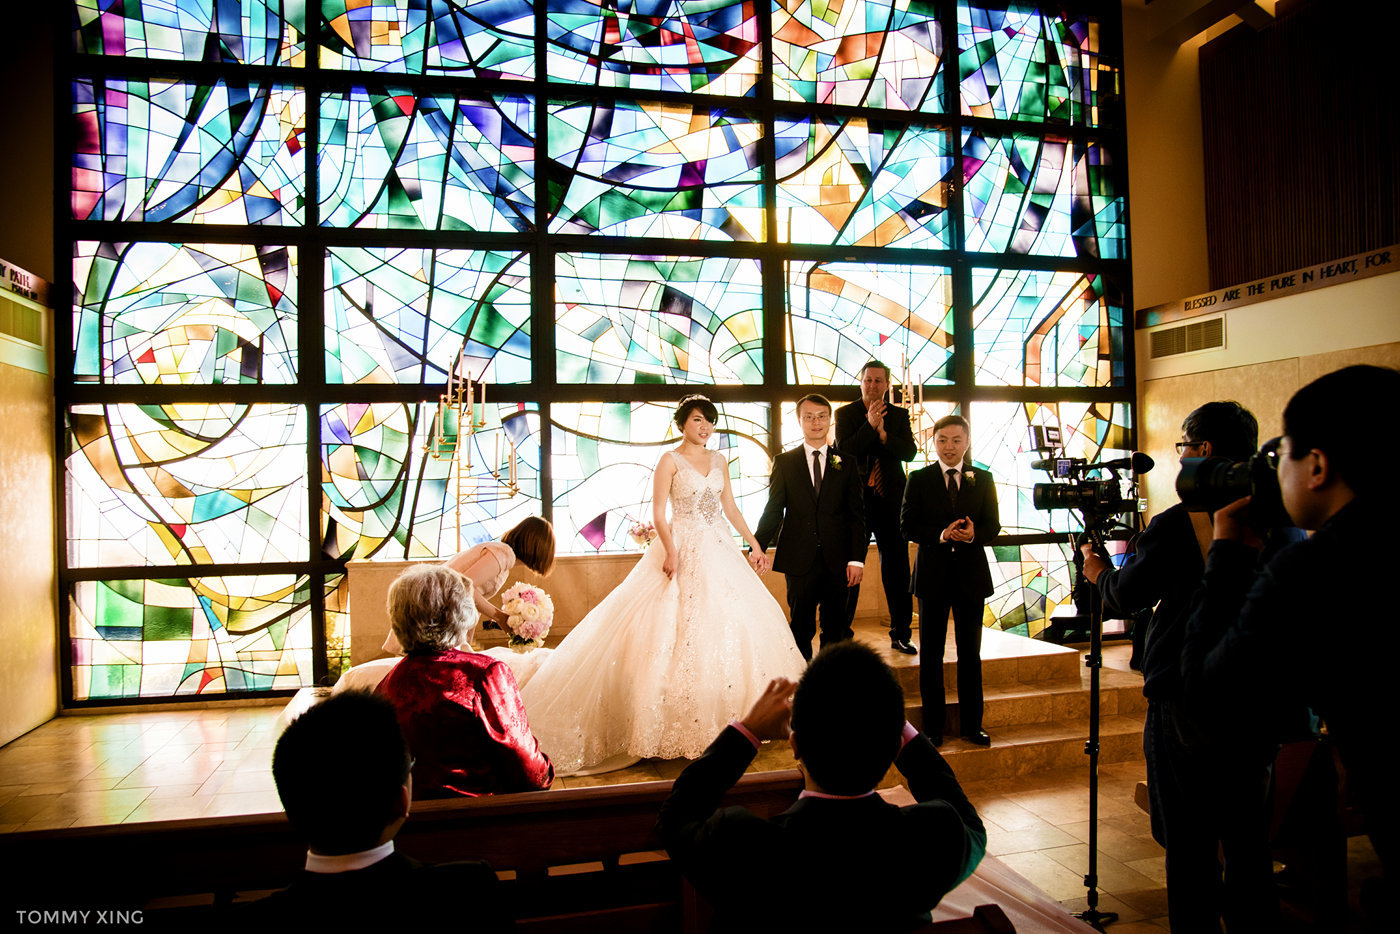 Qinglu Meng & Daozheng Chen Wedding Slideshow-162-E.JPG